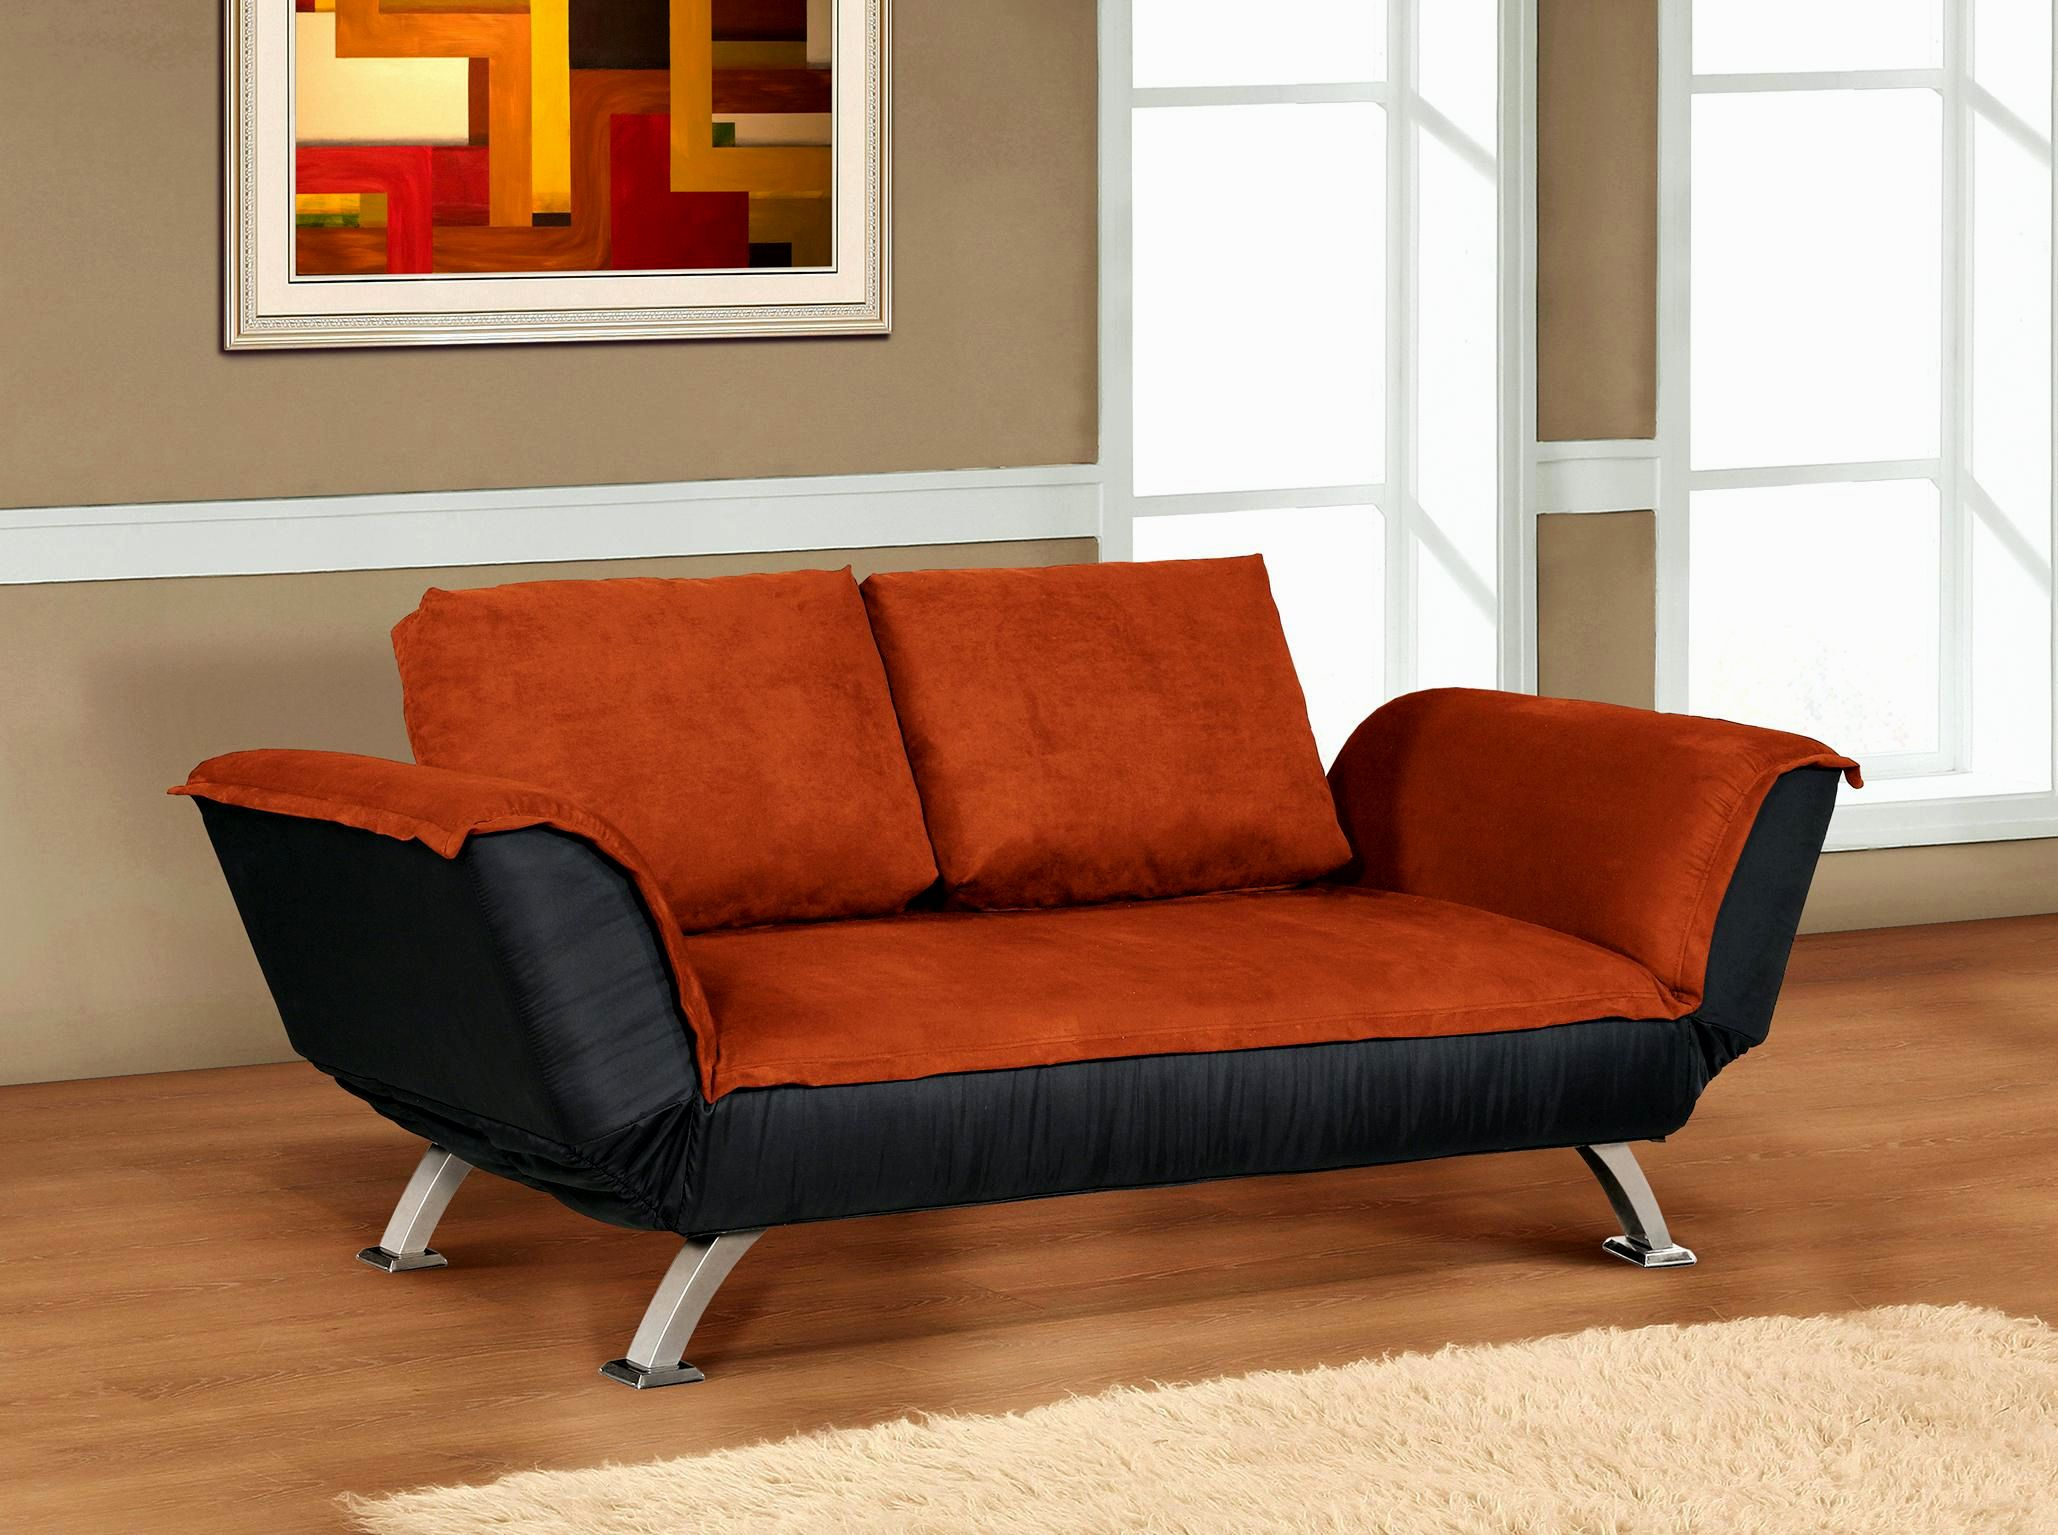 excellent jennifer convertible sofas photograph-Wonderful Jennifer Convertible sofas Gallery